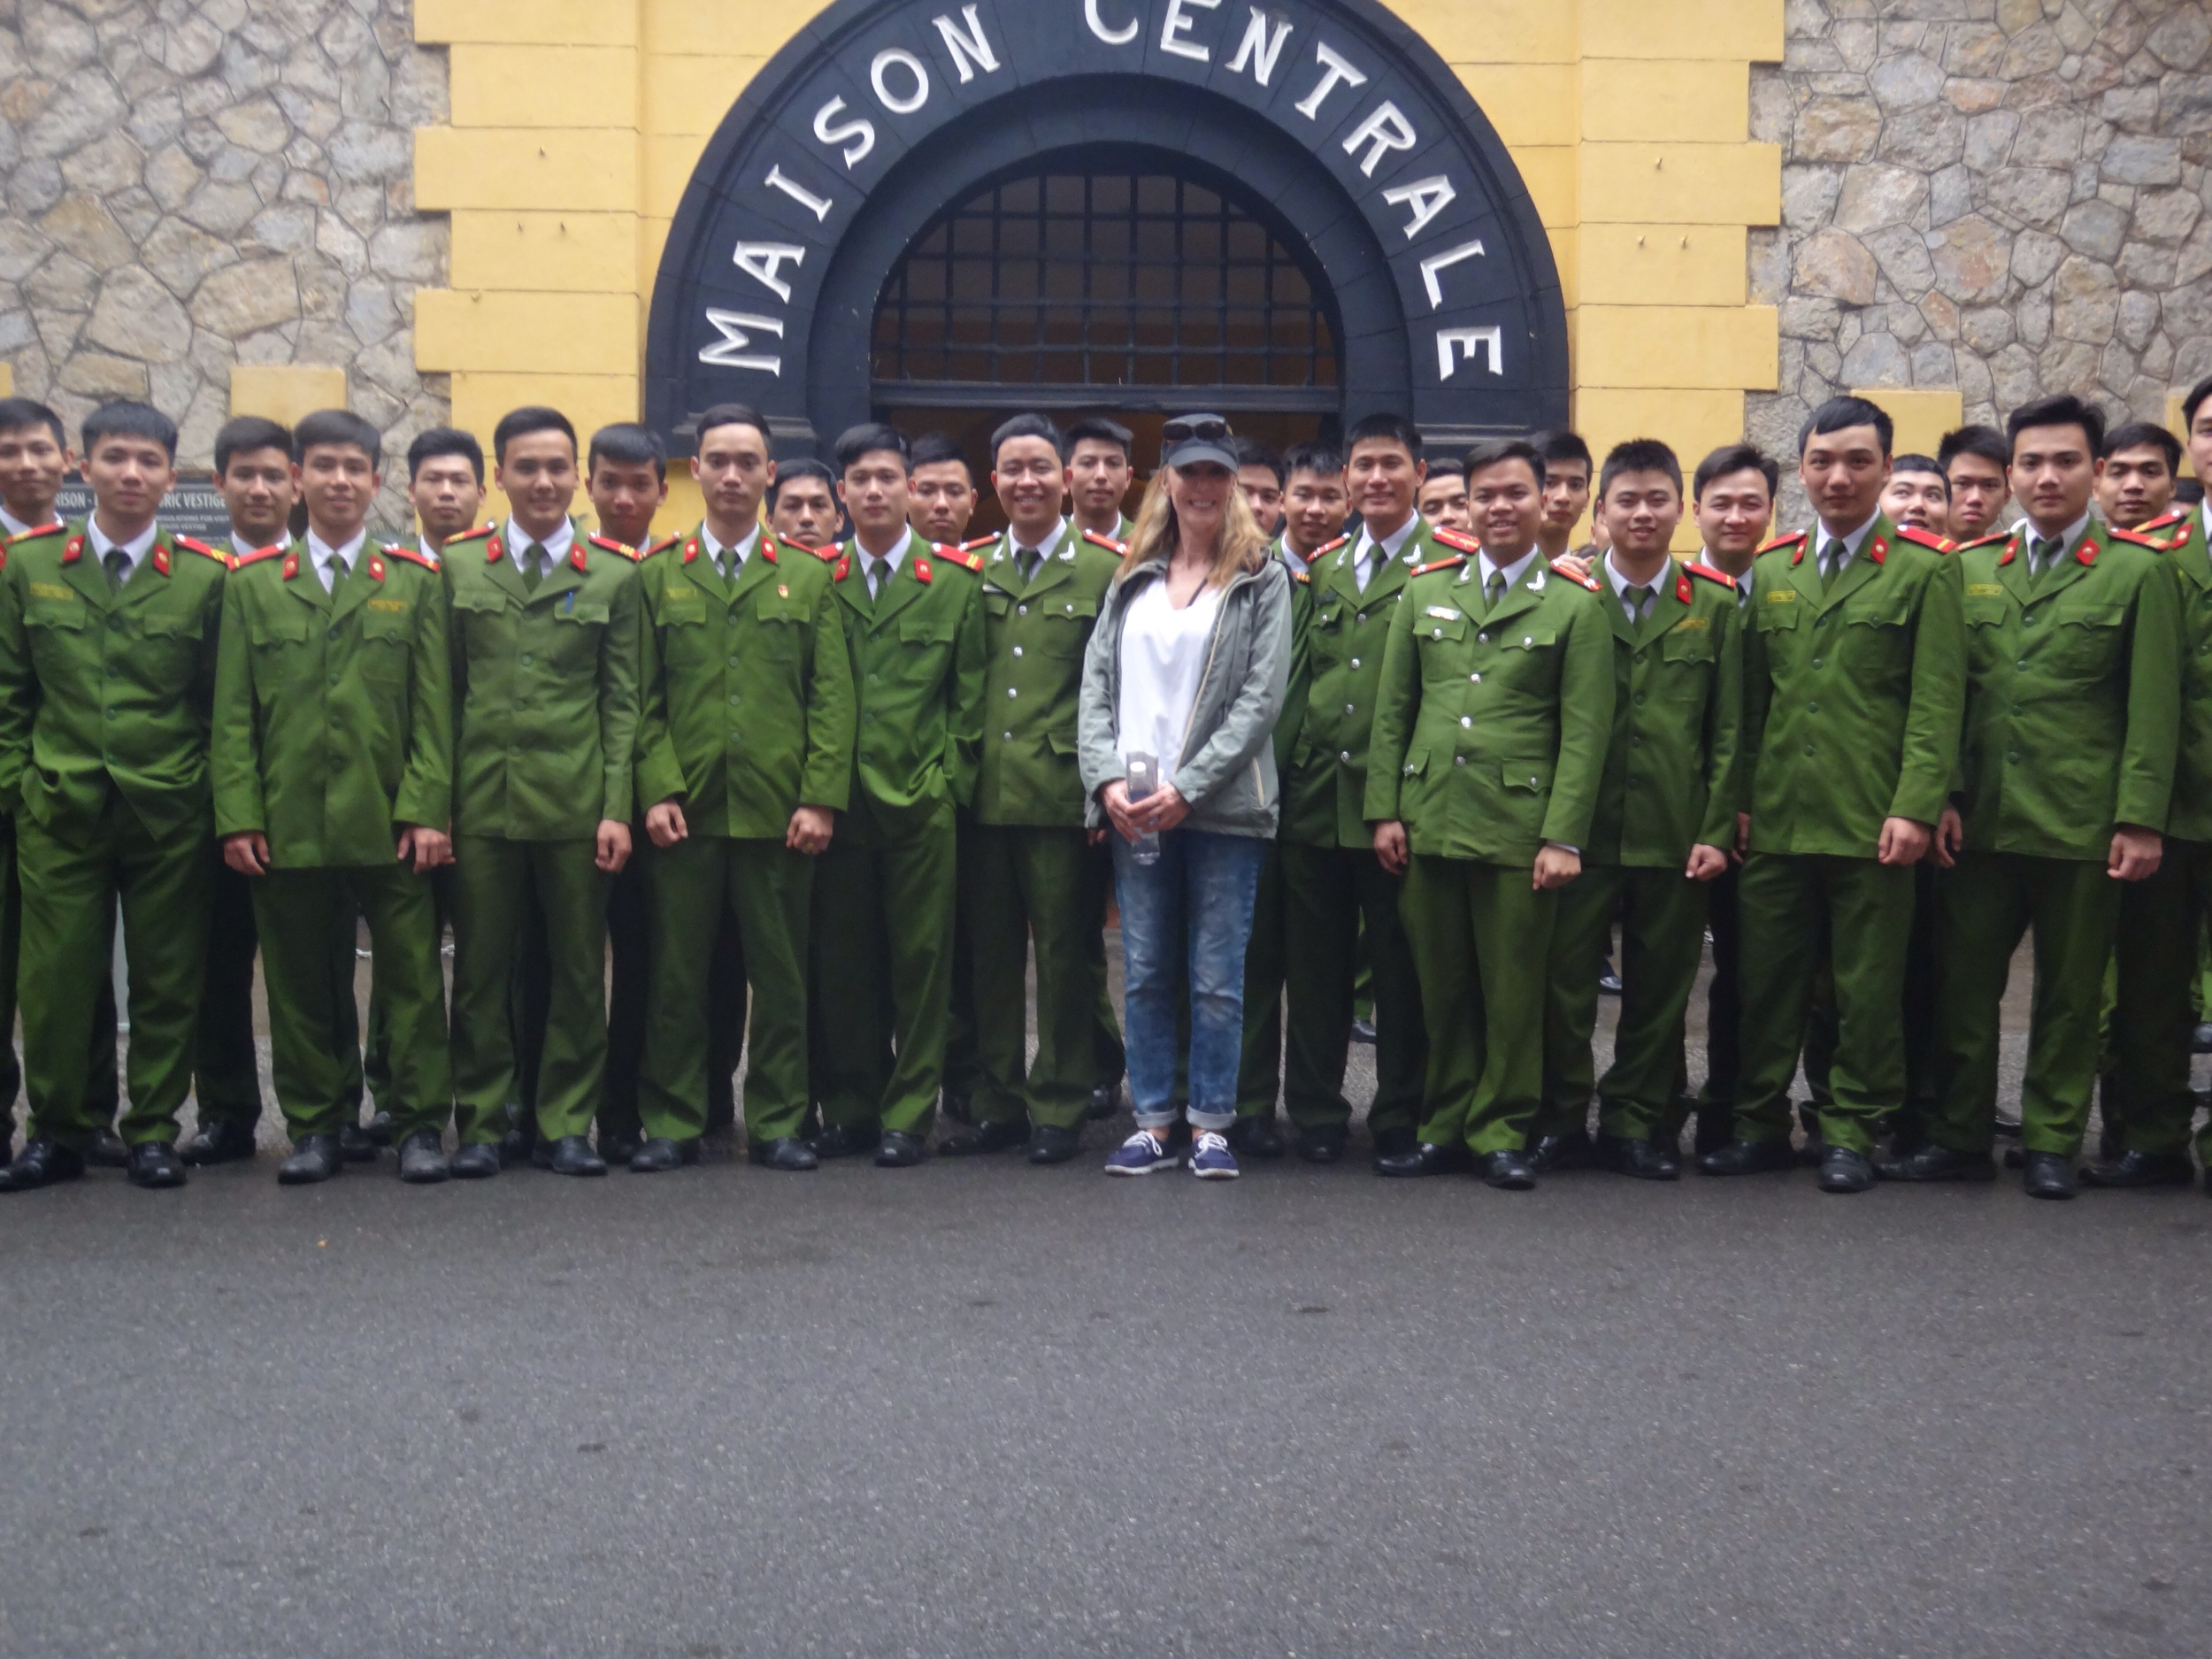 Me with new recruits to the Vietnamese police, outside the original gates of Hoa Lo Prison (literally translated as 'fiery furnace').  Named Maison Centrale (Central House) by the French and called the 'Hanoi Hilton' by American prisoners of war.